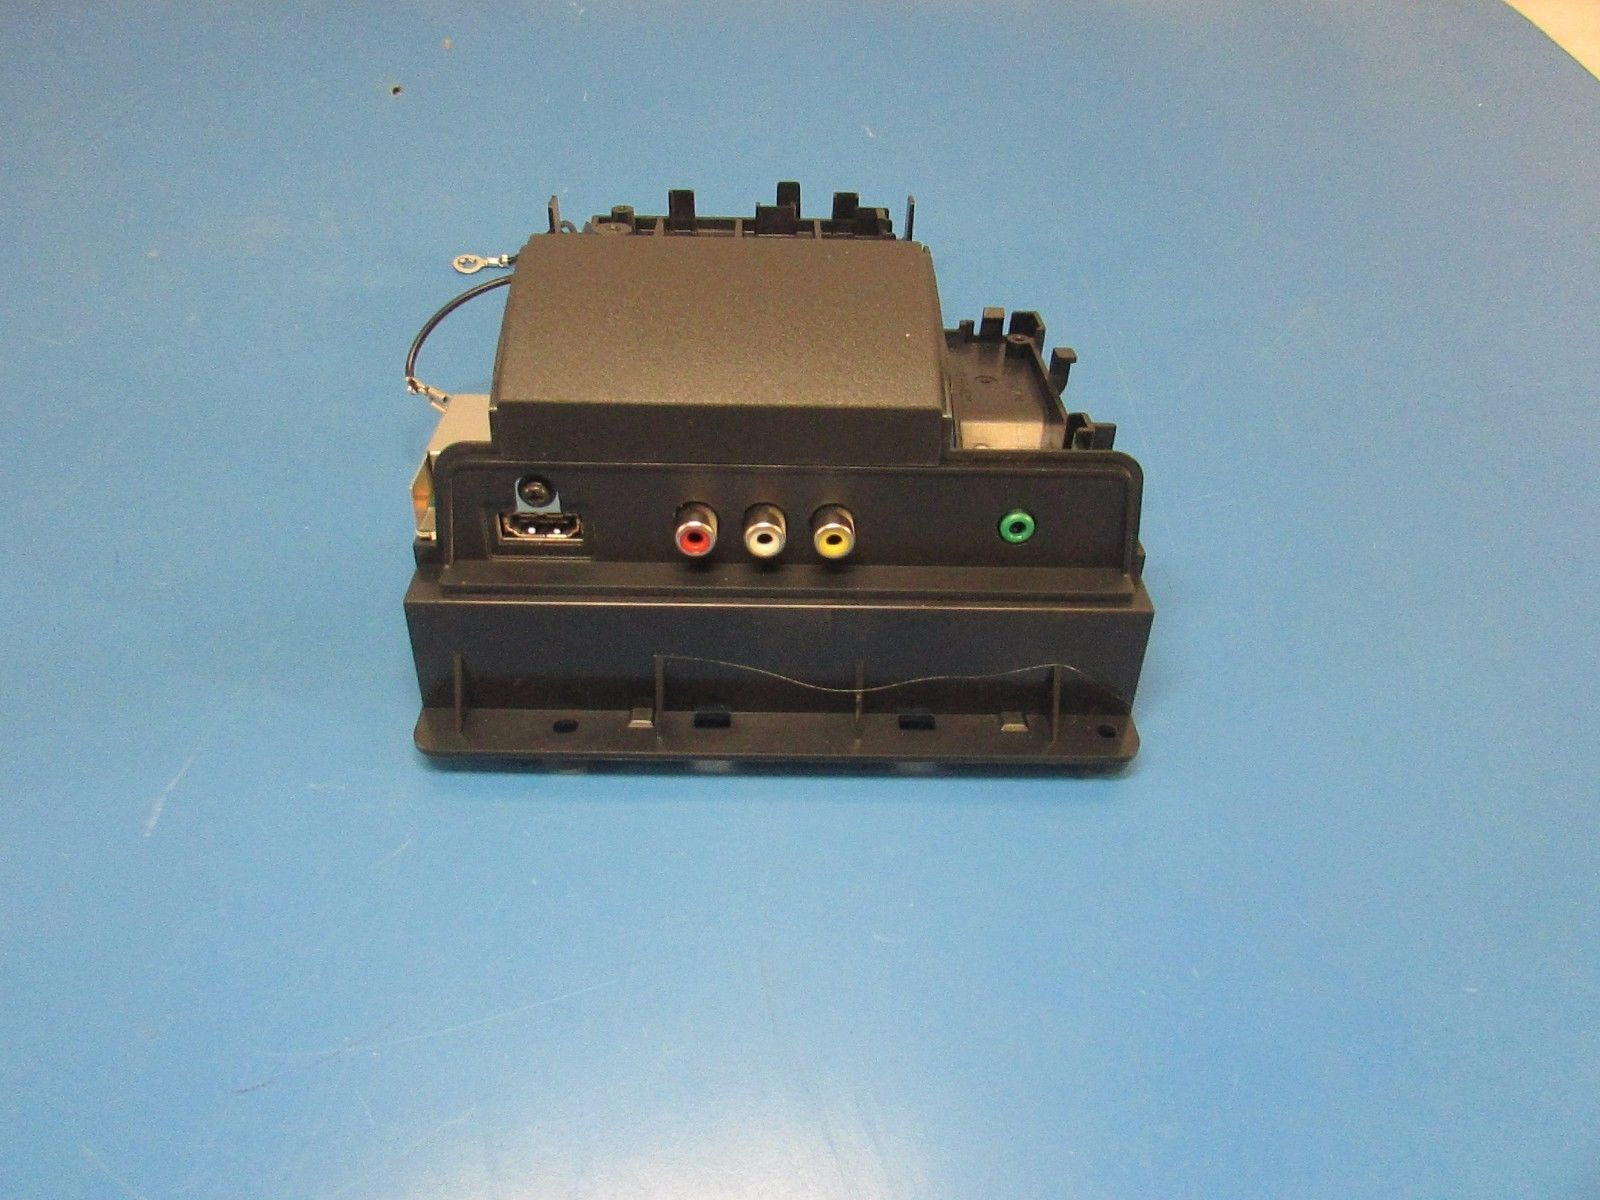 1-871-245-12 Sony Bravia TV Television H5 and 13 similar items